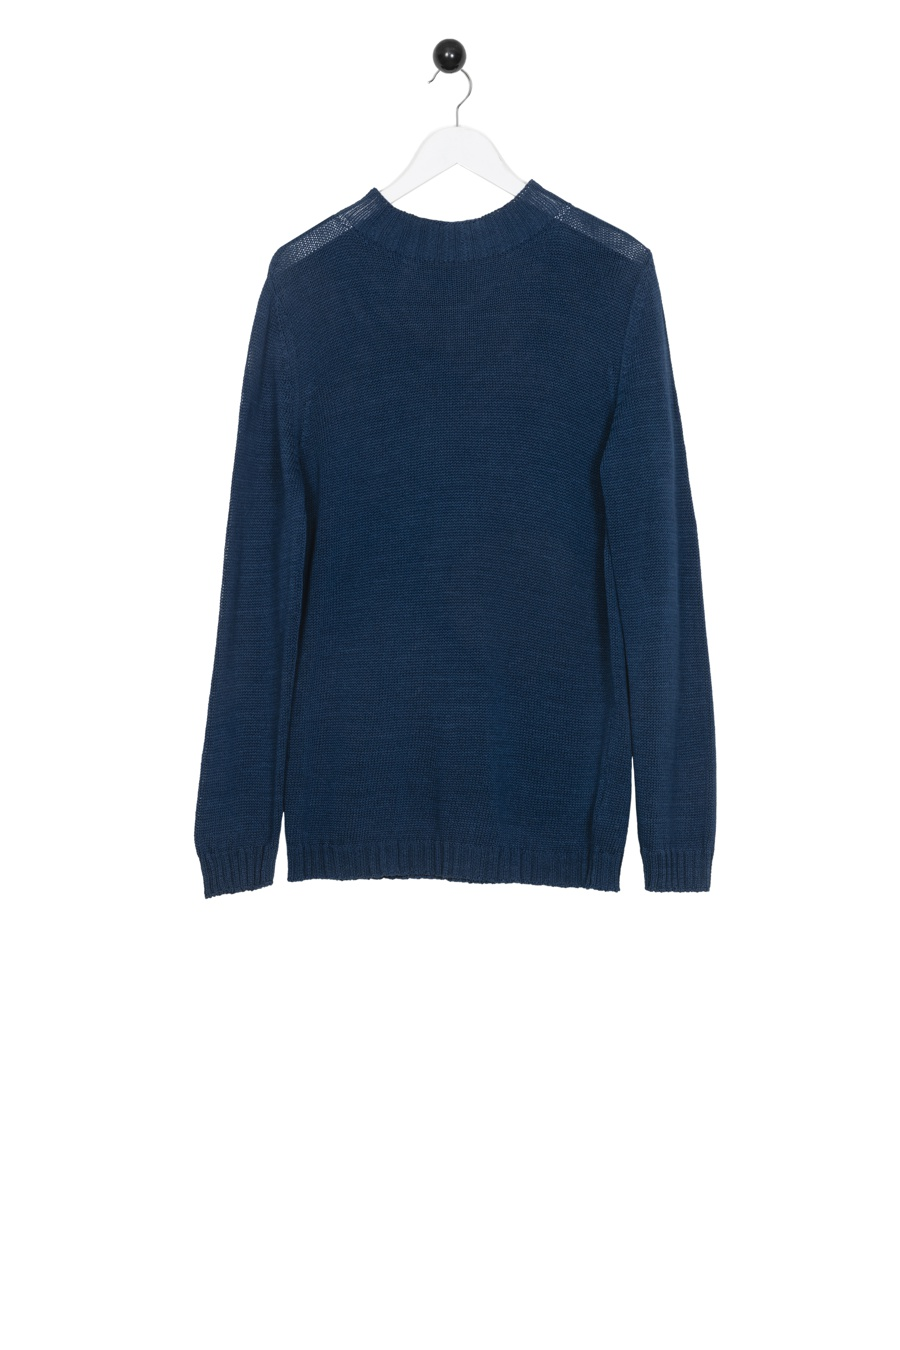 Antibes Sweater